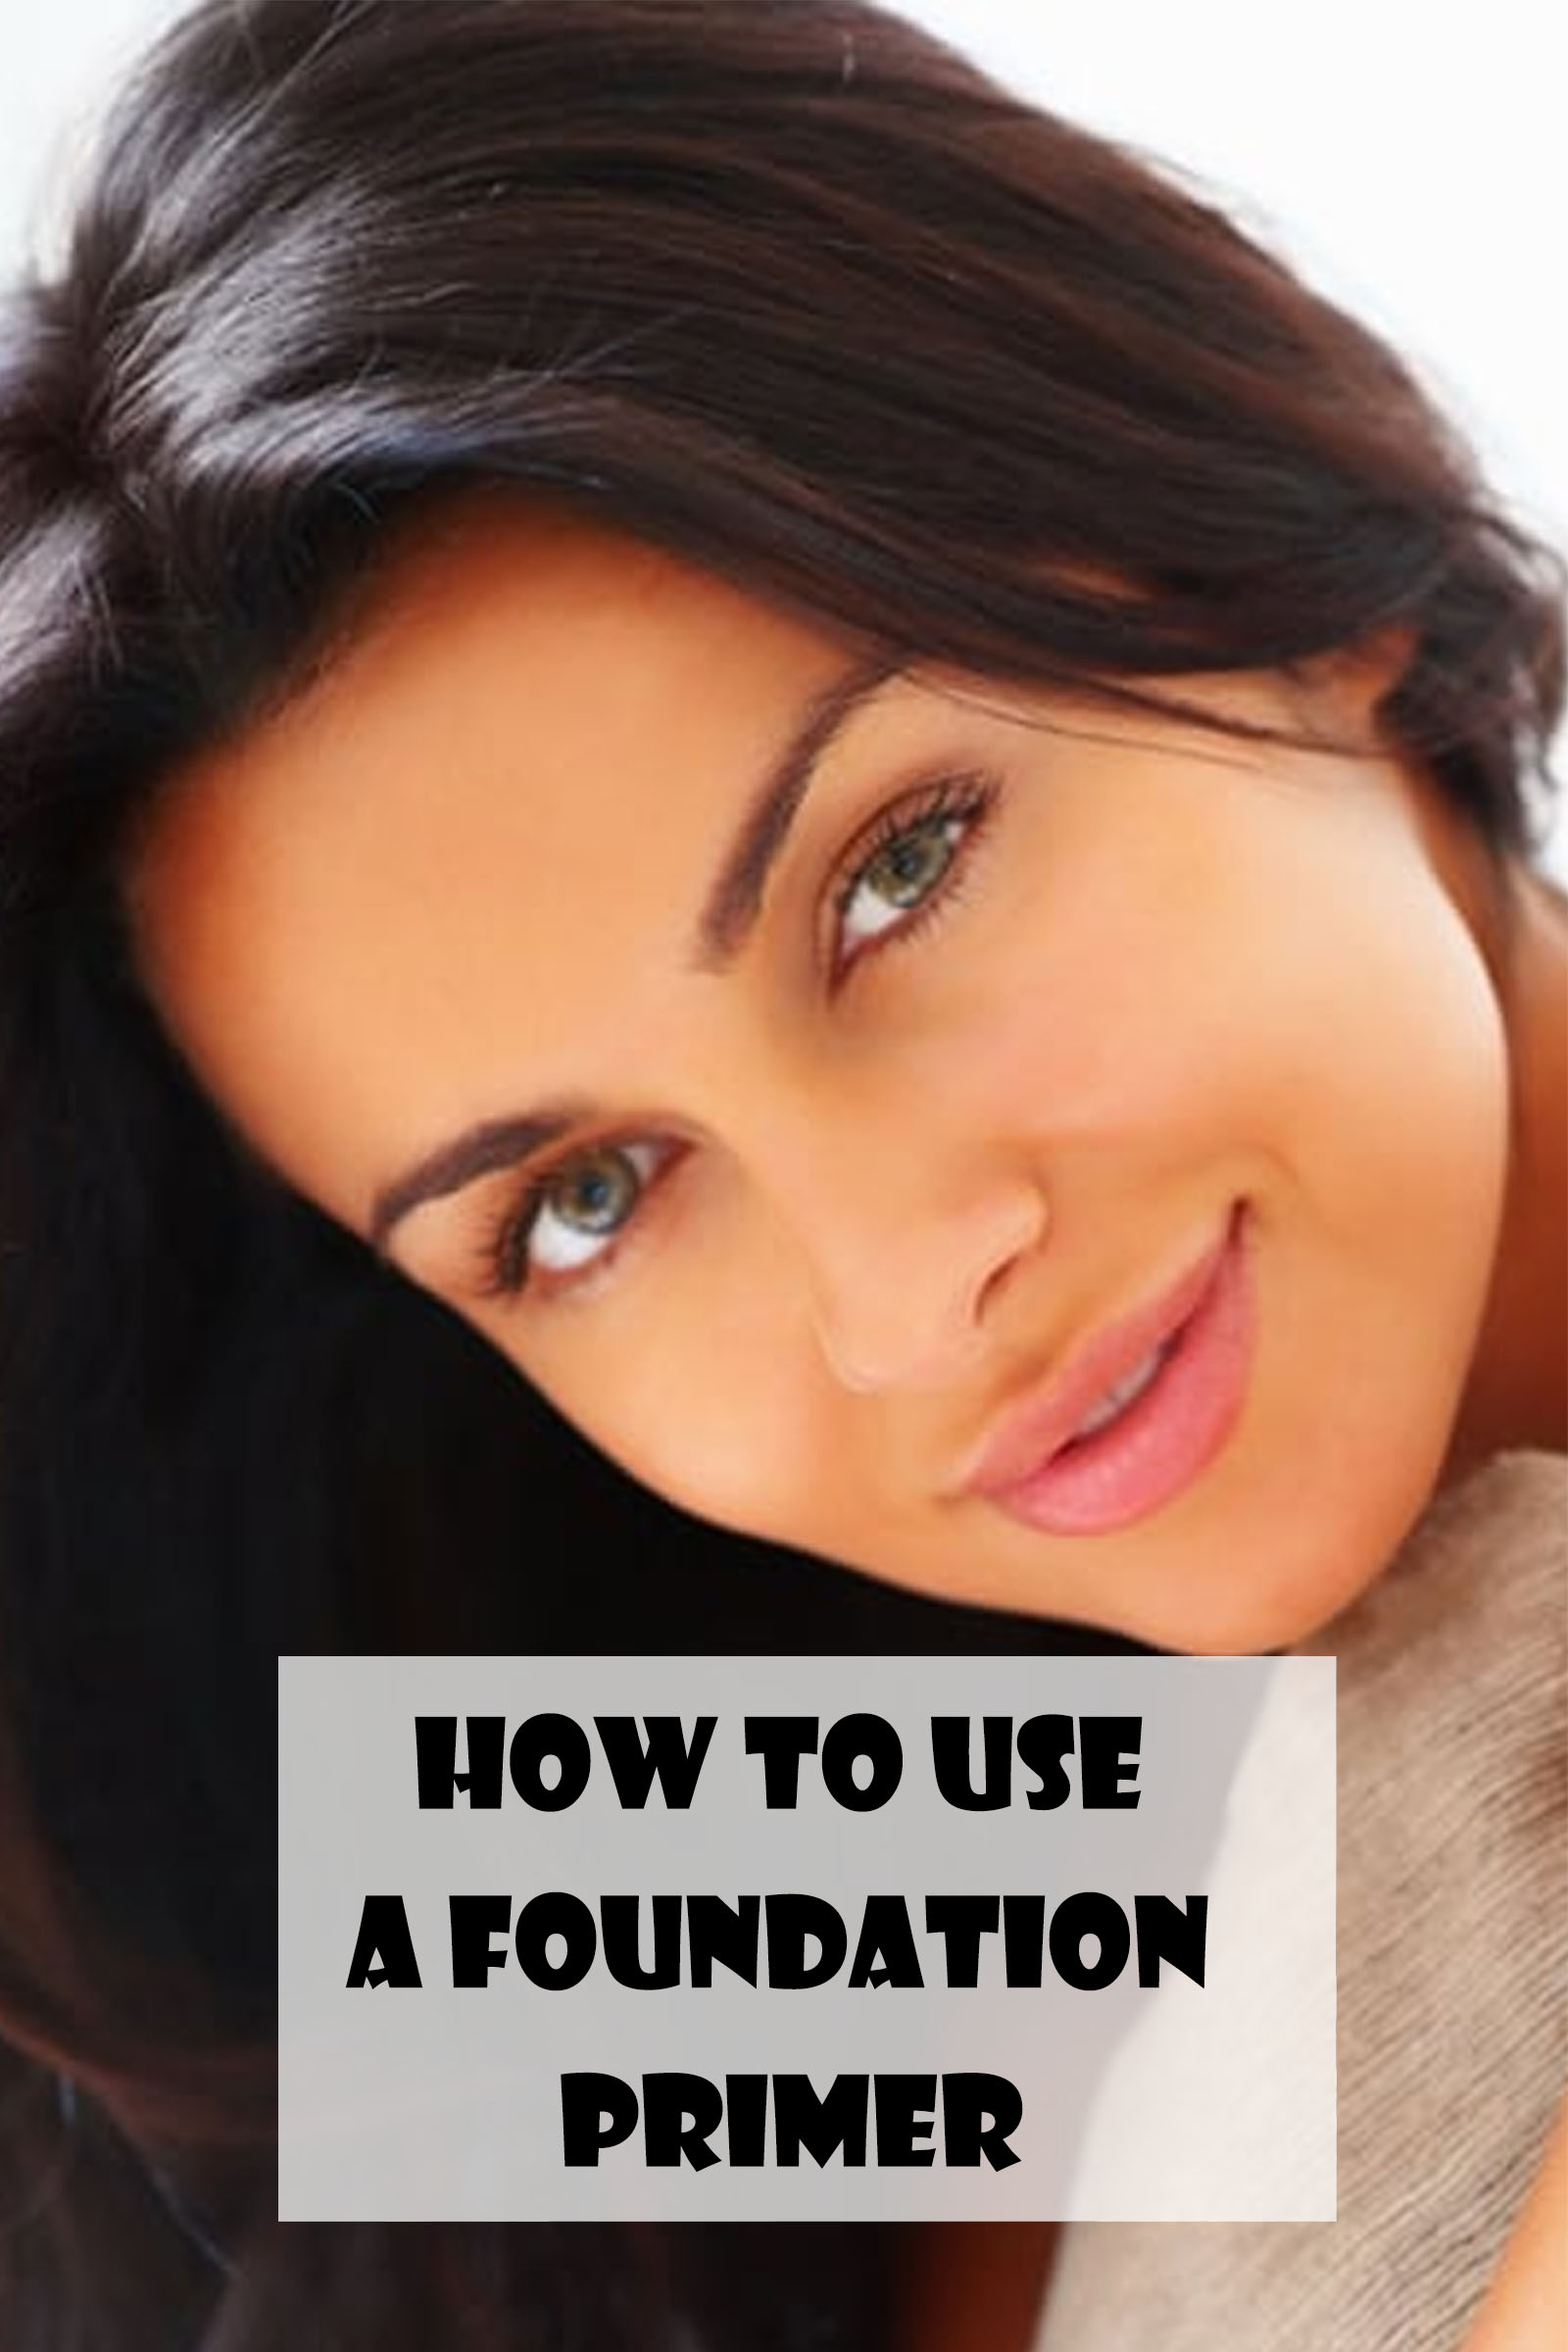 How to Use a Foundation Primer